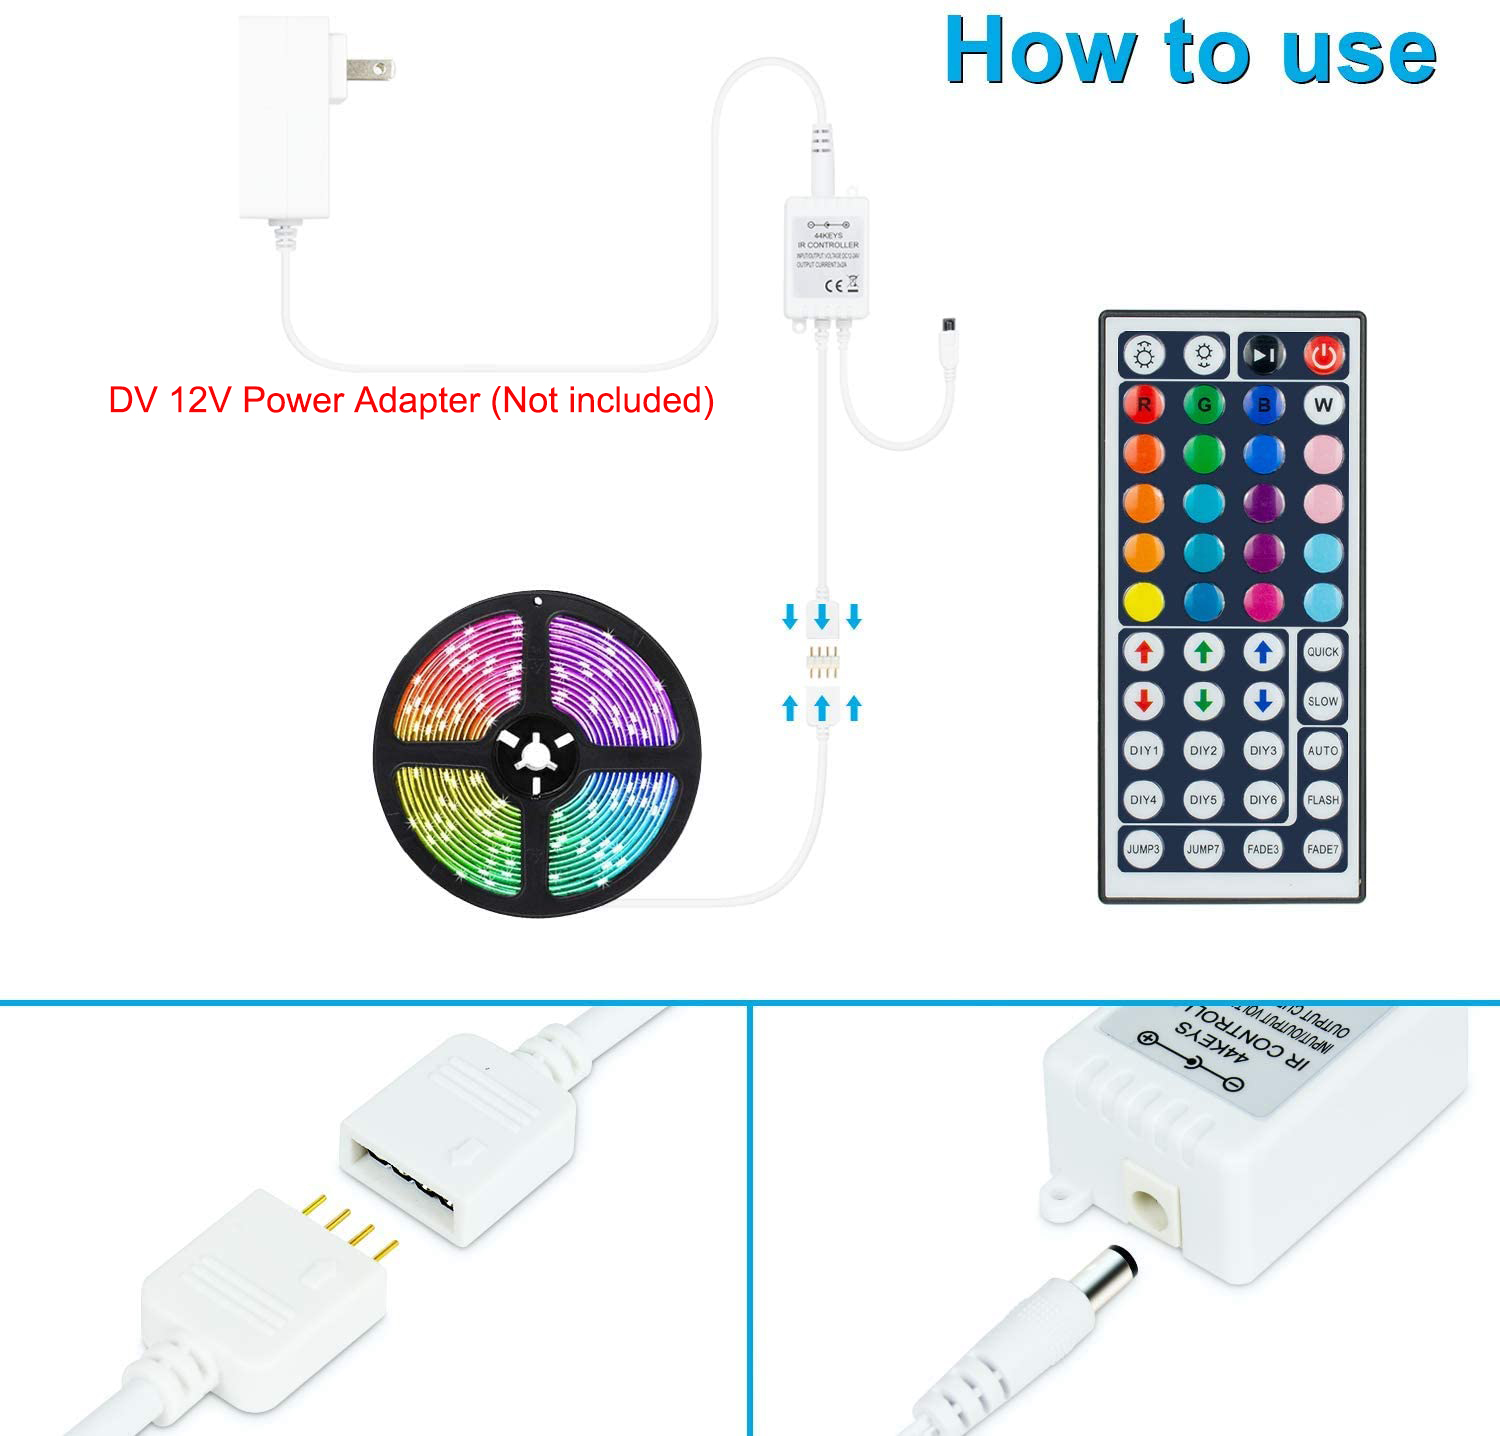 HF-MCLED44: Led Light Remote Controller Kit, 1-Port 44 Keys Wireless IR Remote with Receiver for RGB 5050 2835 LED Strip Lights